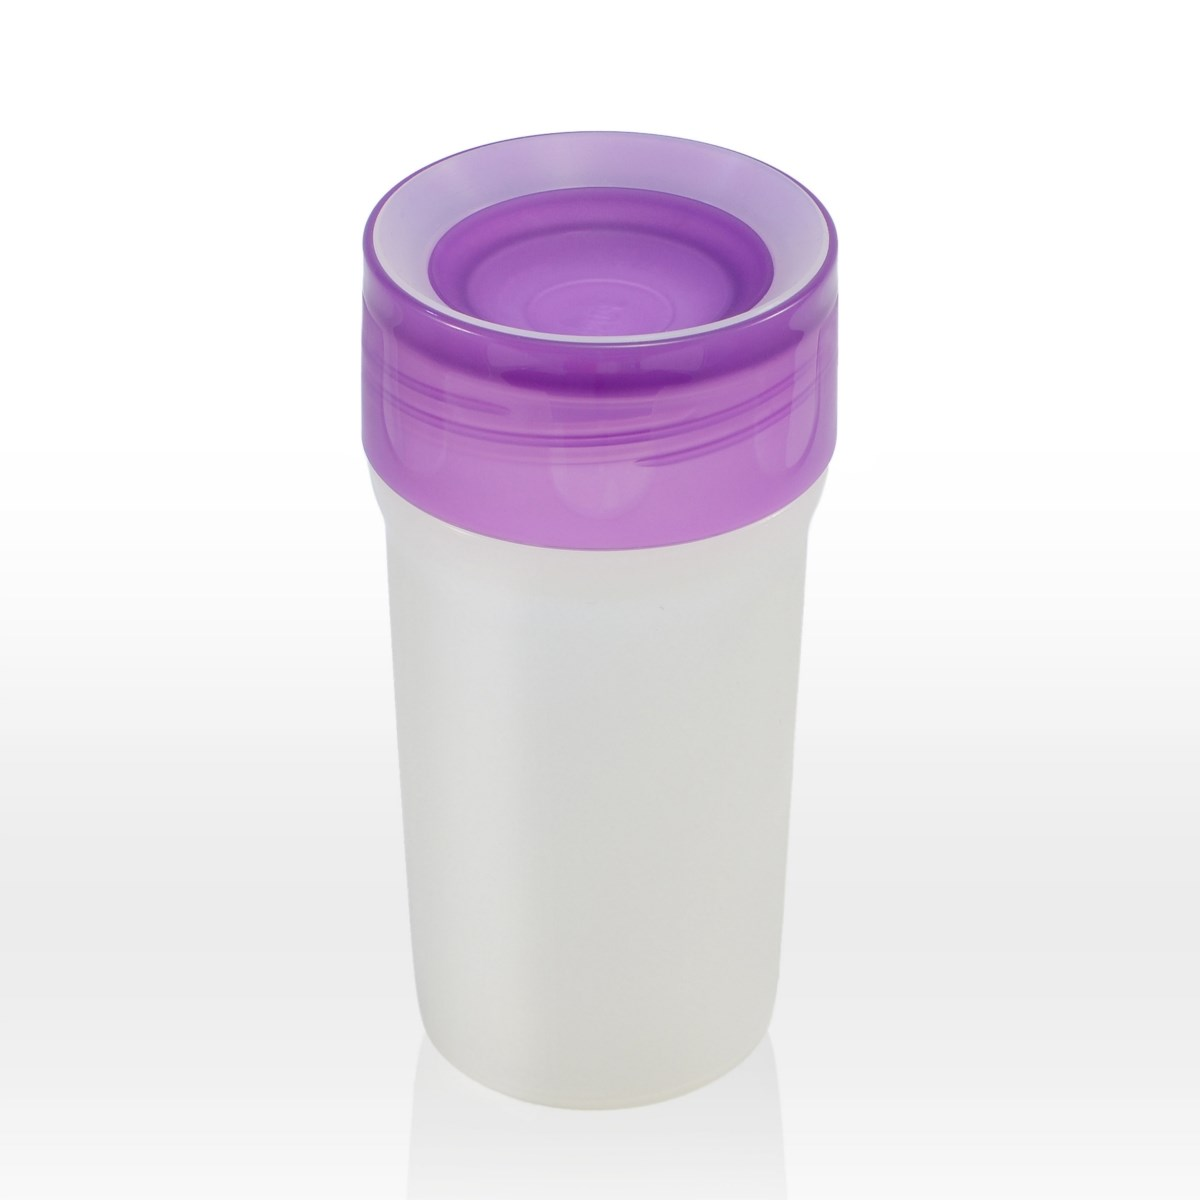 litecup - sippy cup & nightlight, the colour purple